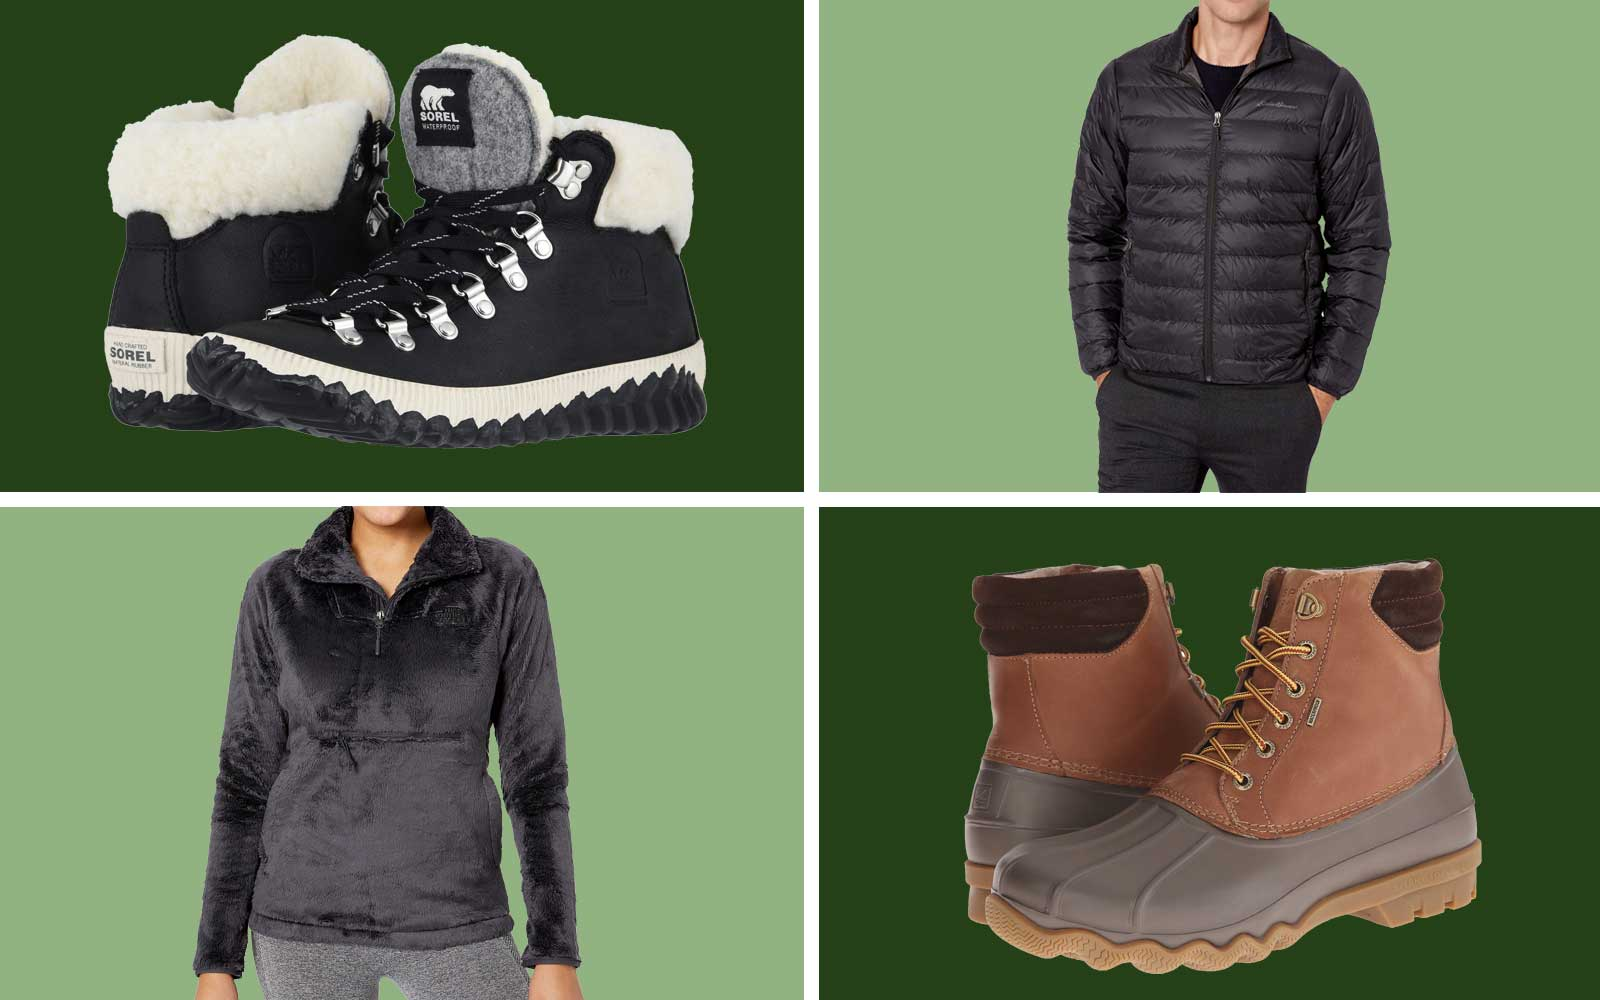 Puffer Coat, Fleece Jacket, and Snow Boots